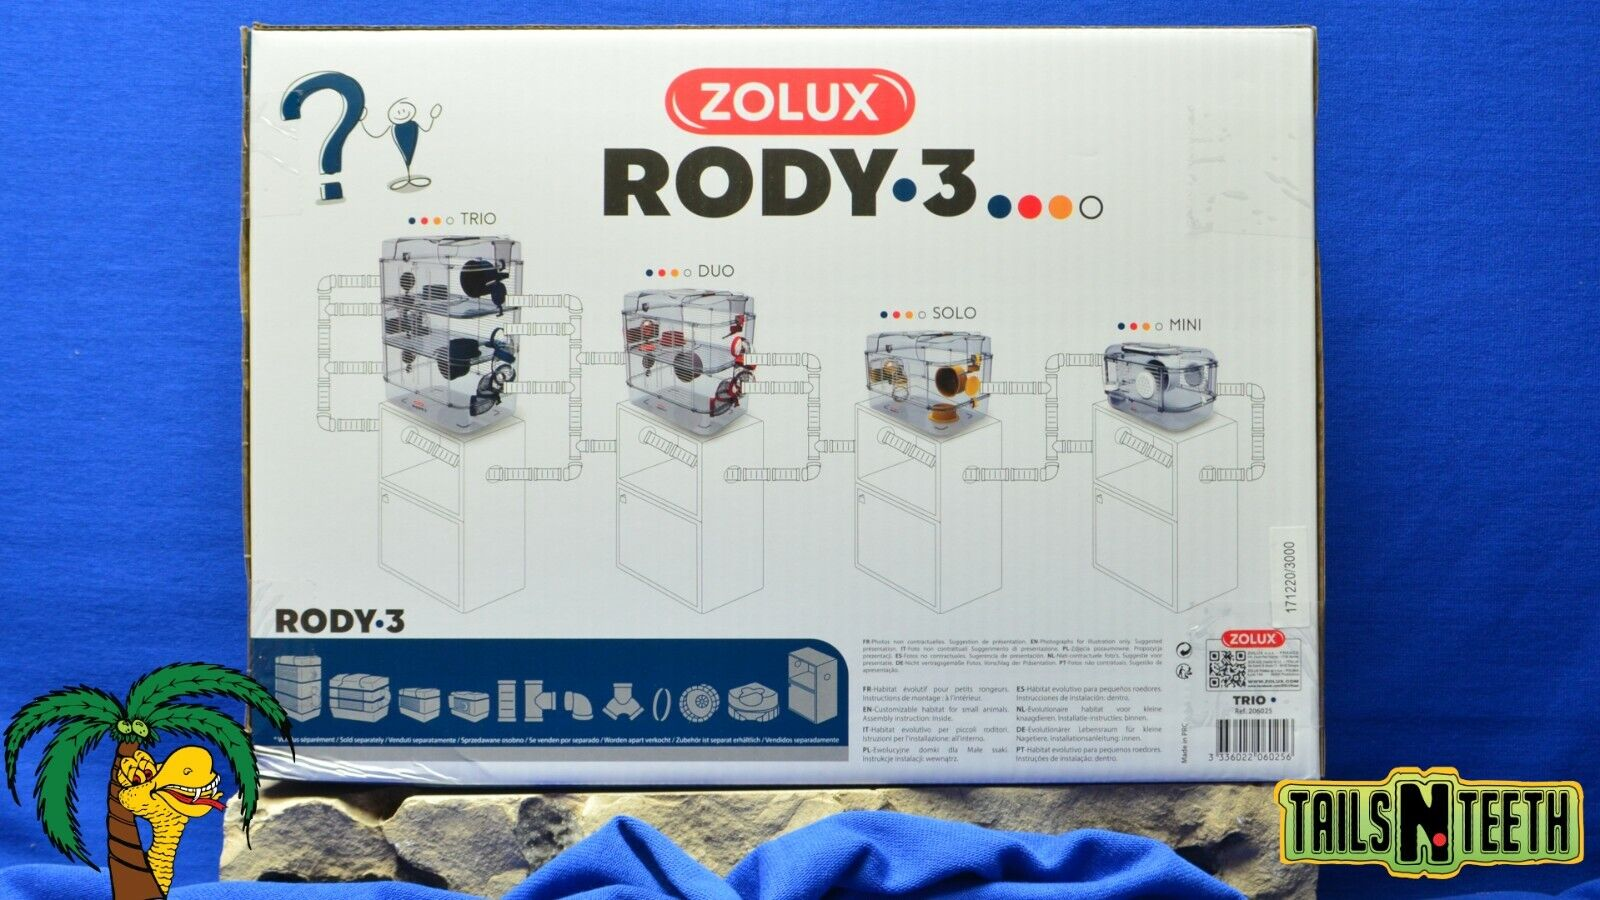 Zolux RODY-3 TRIO Cage For Hamsters Gerbils Mice - Blue - InterConnecting Cages - CA$66.99